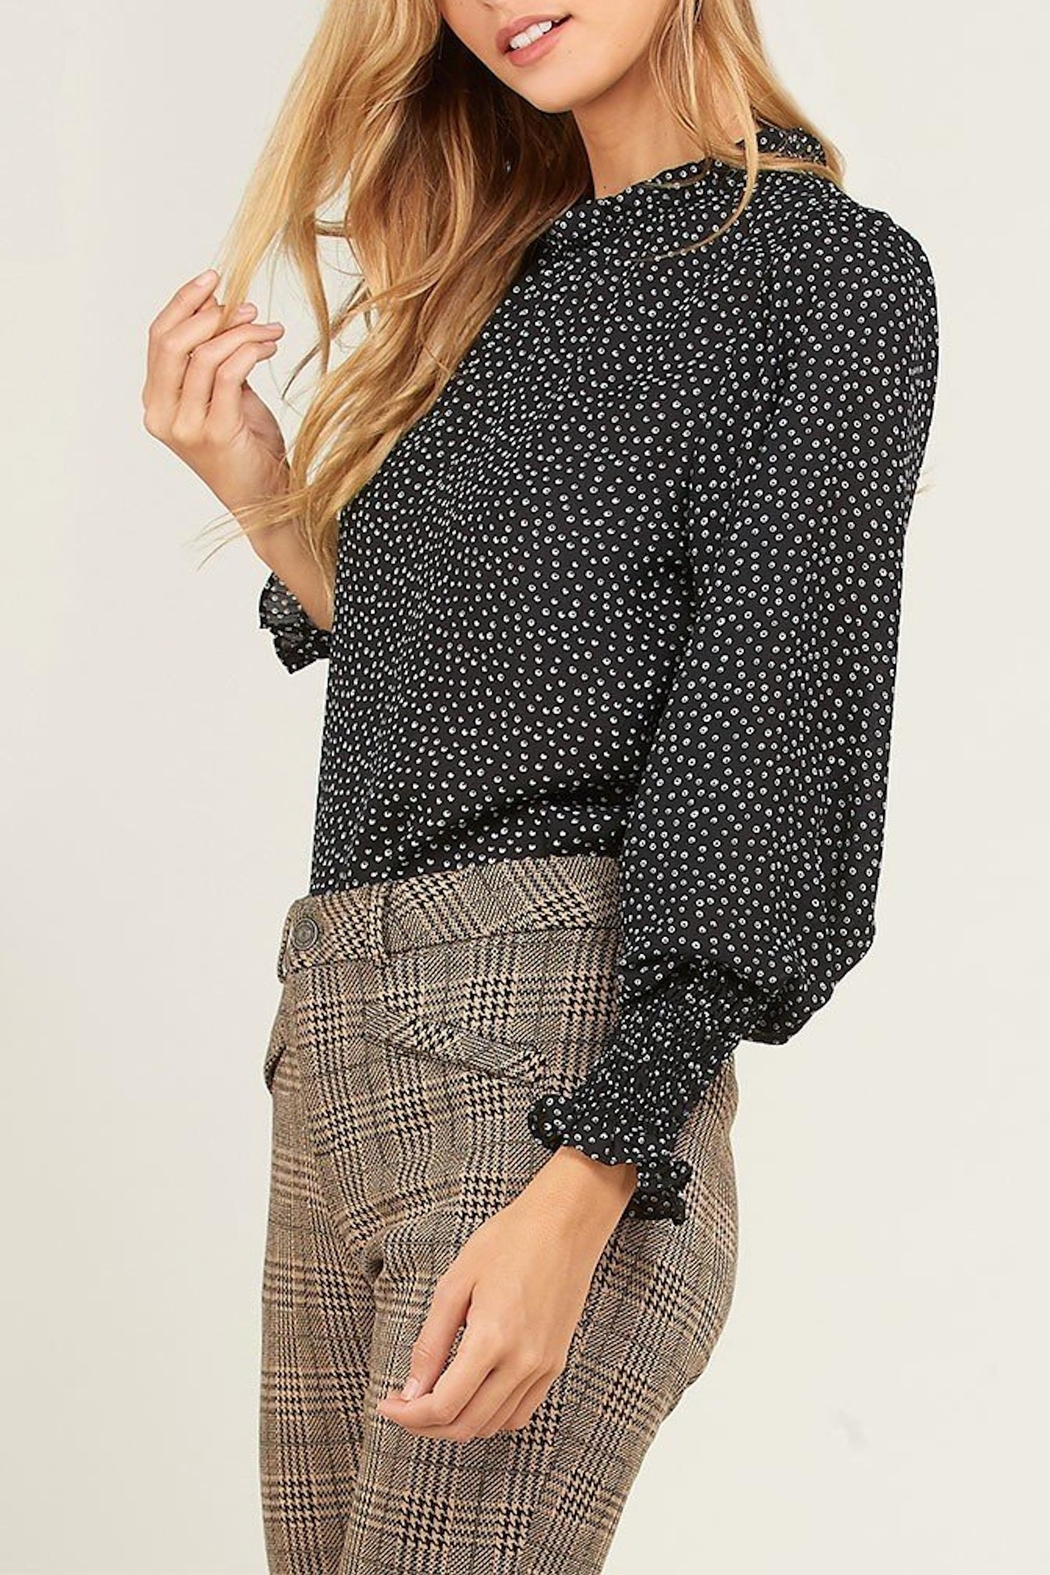 3d3a7236c3b60 Wishlist Dotted Mock-Neck Blouse from Virginia by mod&soul — Shoptiques